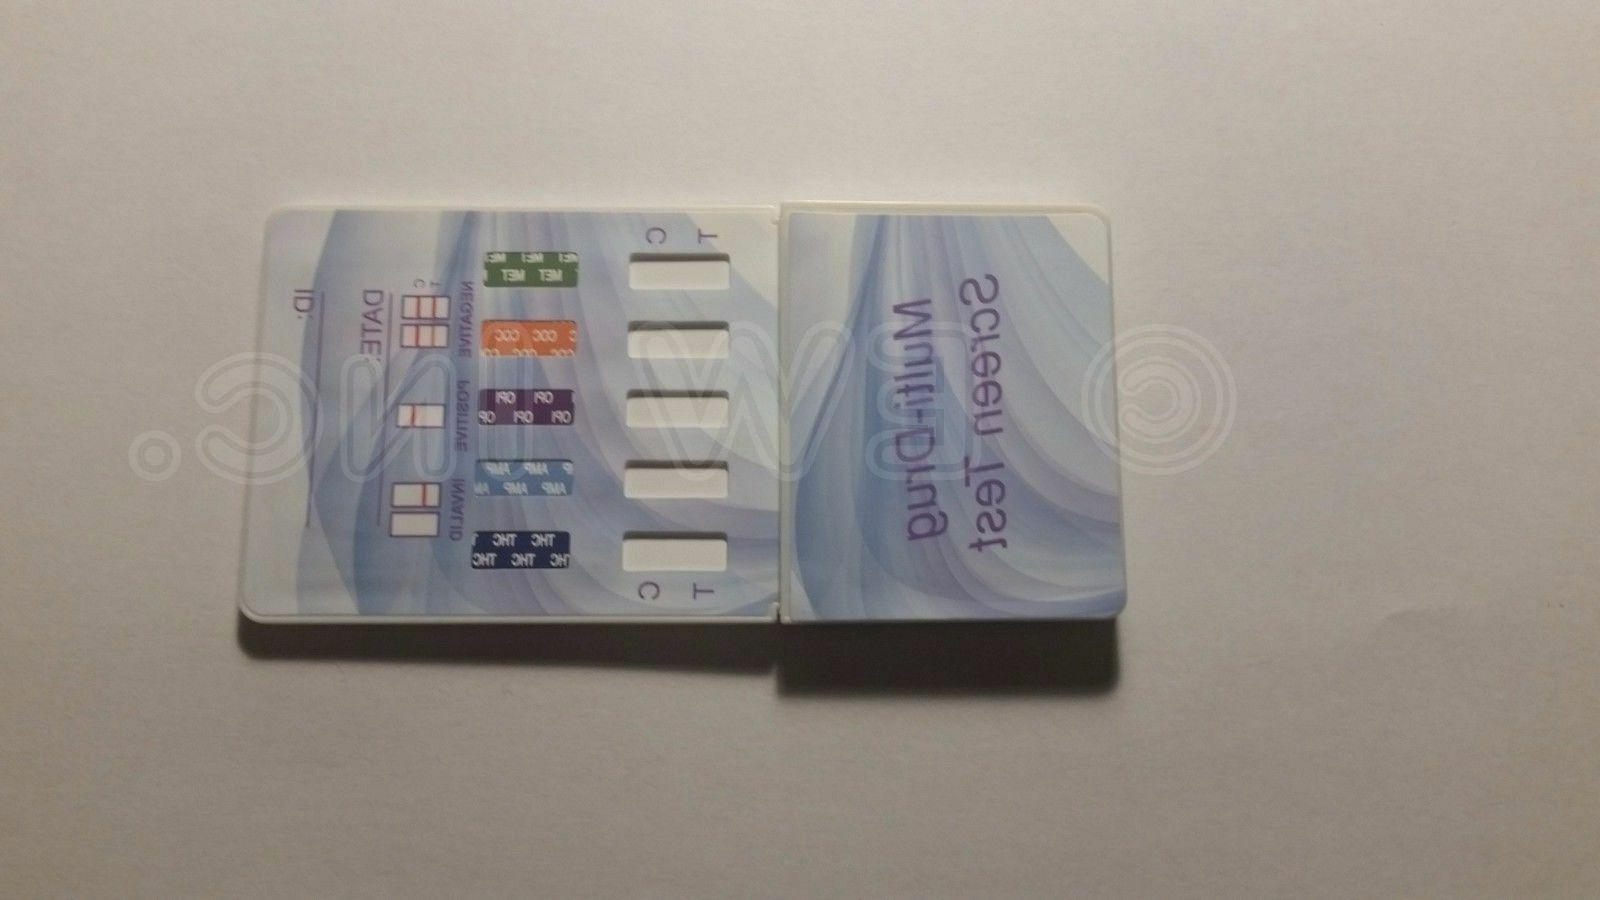 10 Panel Drug Test Kit - Drug Tests MARIJUANA COCAINE OPIATE